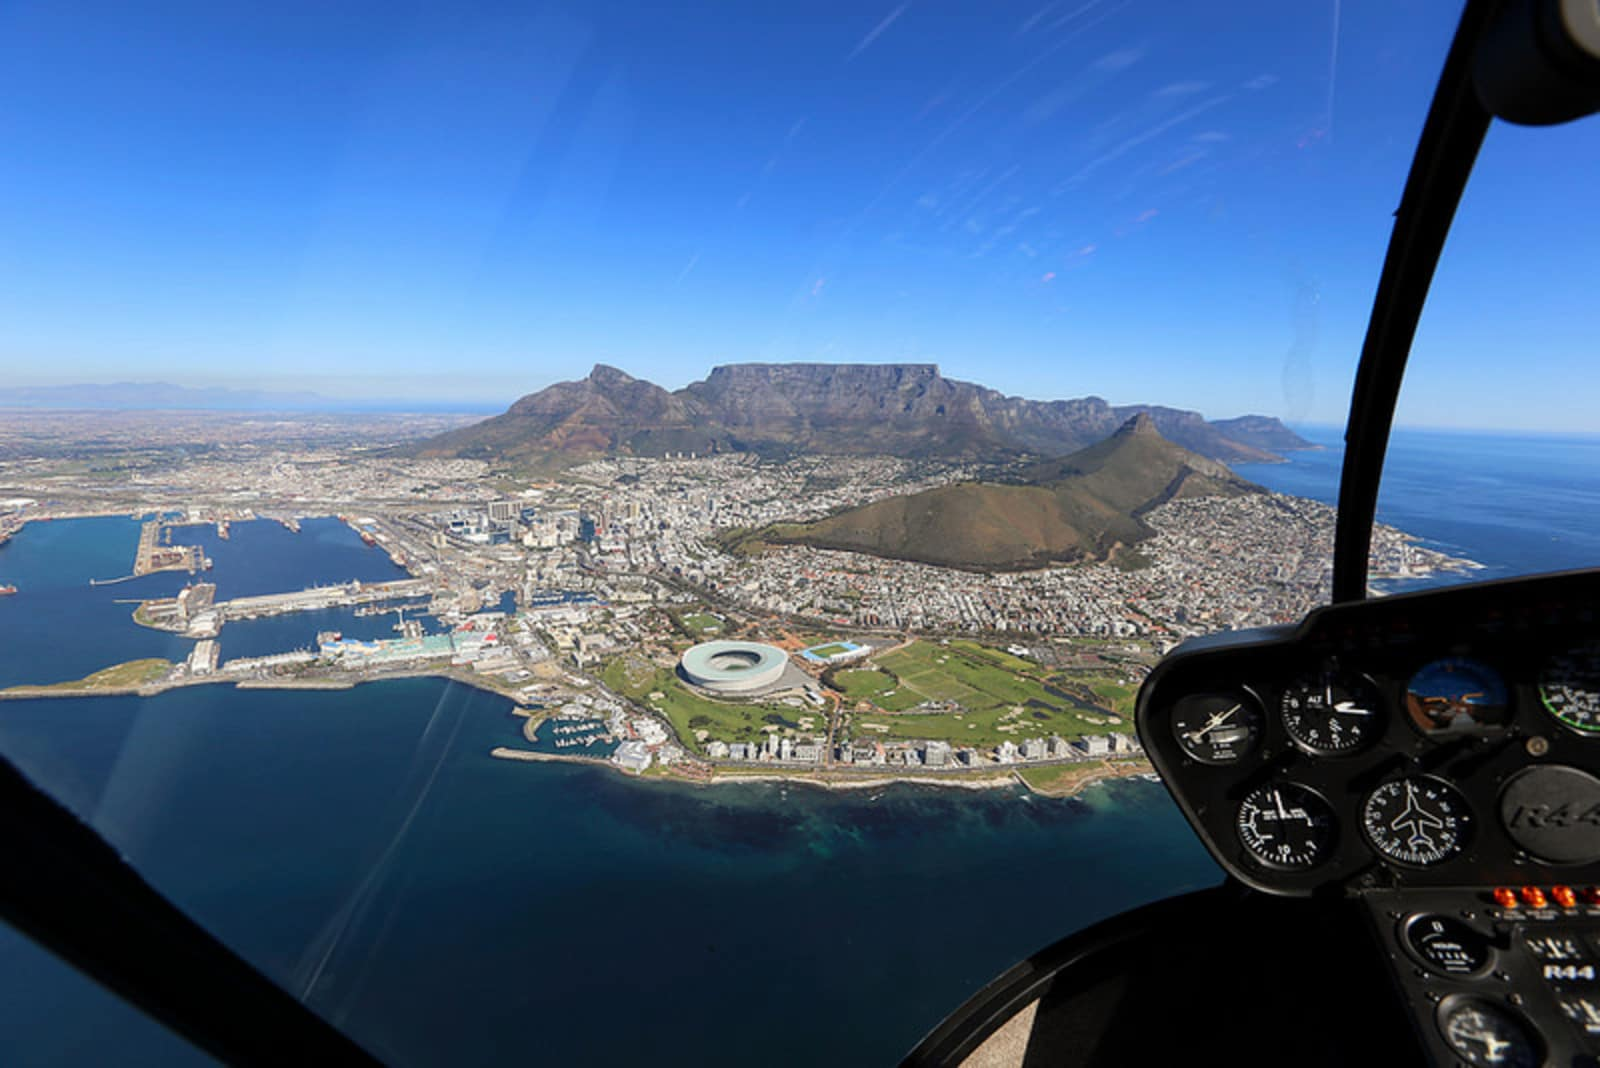 The view of Cape Town from a helicopter